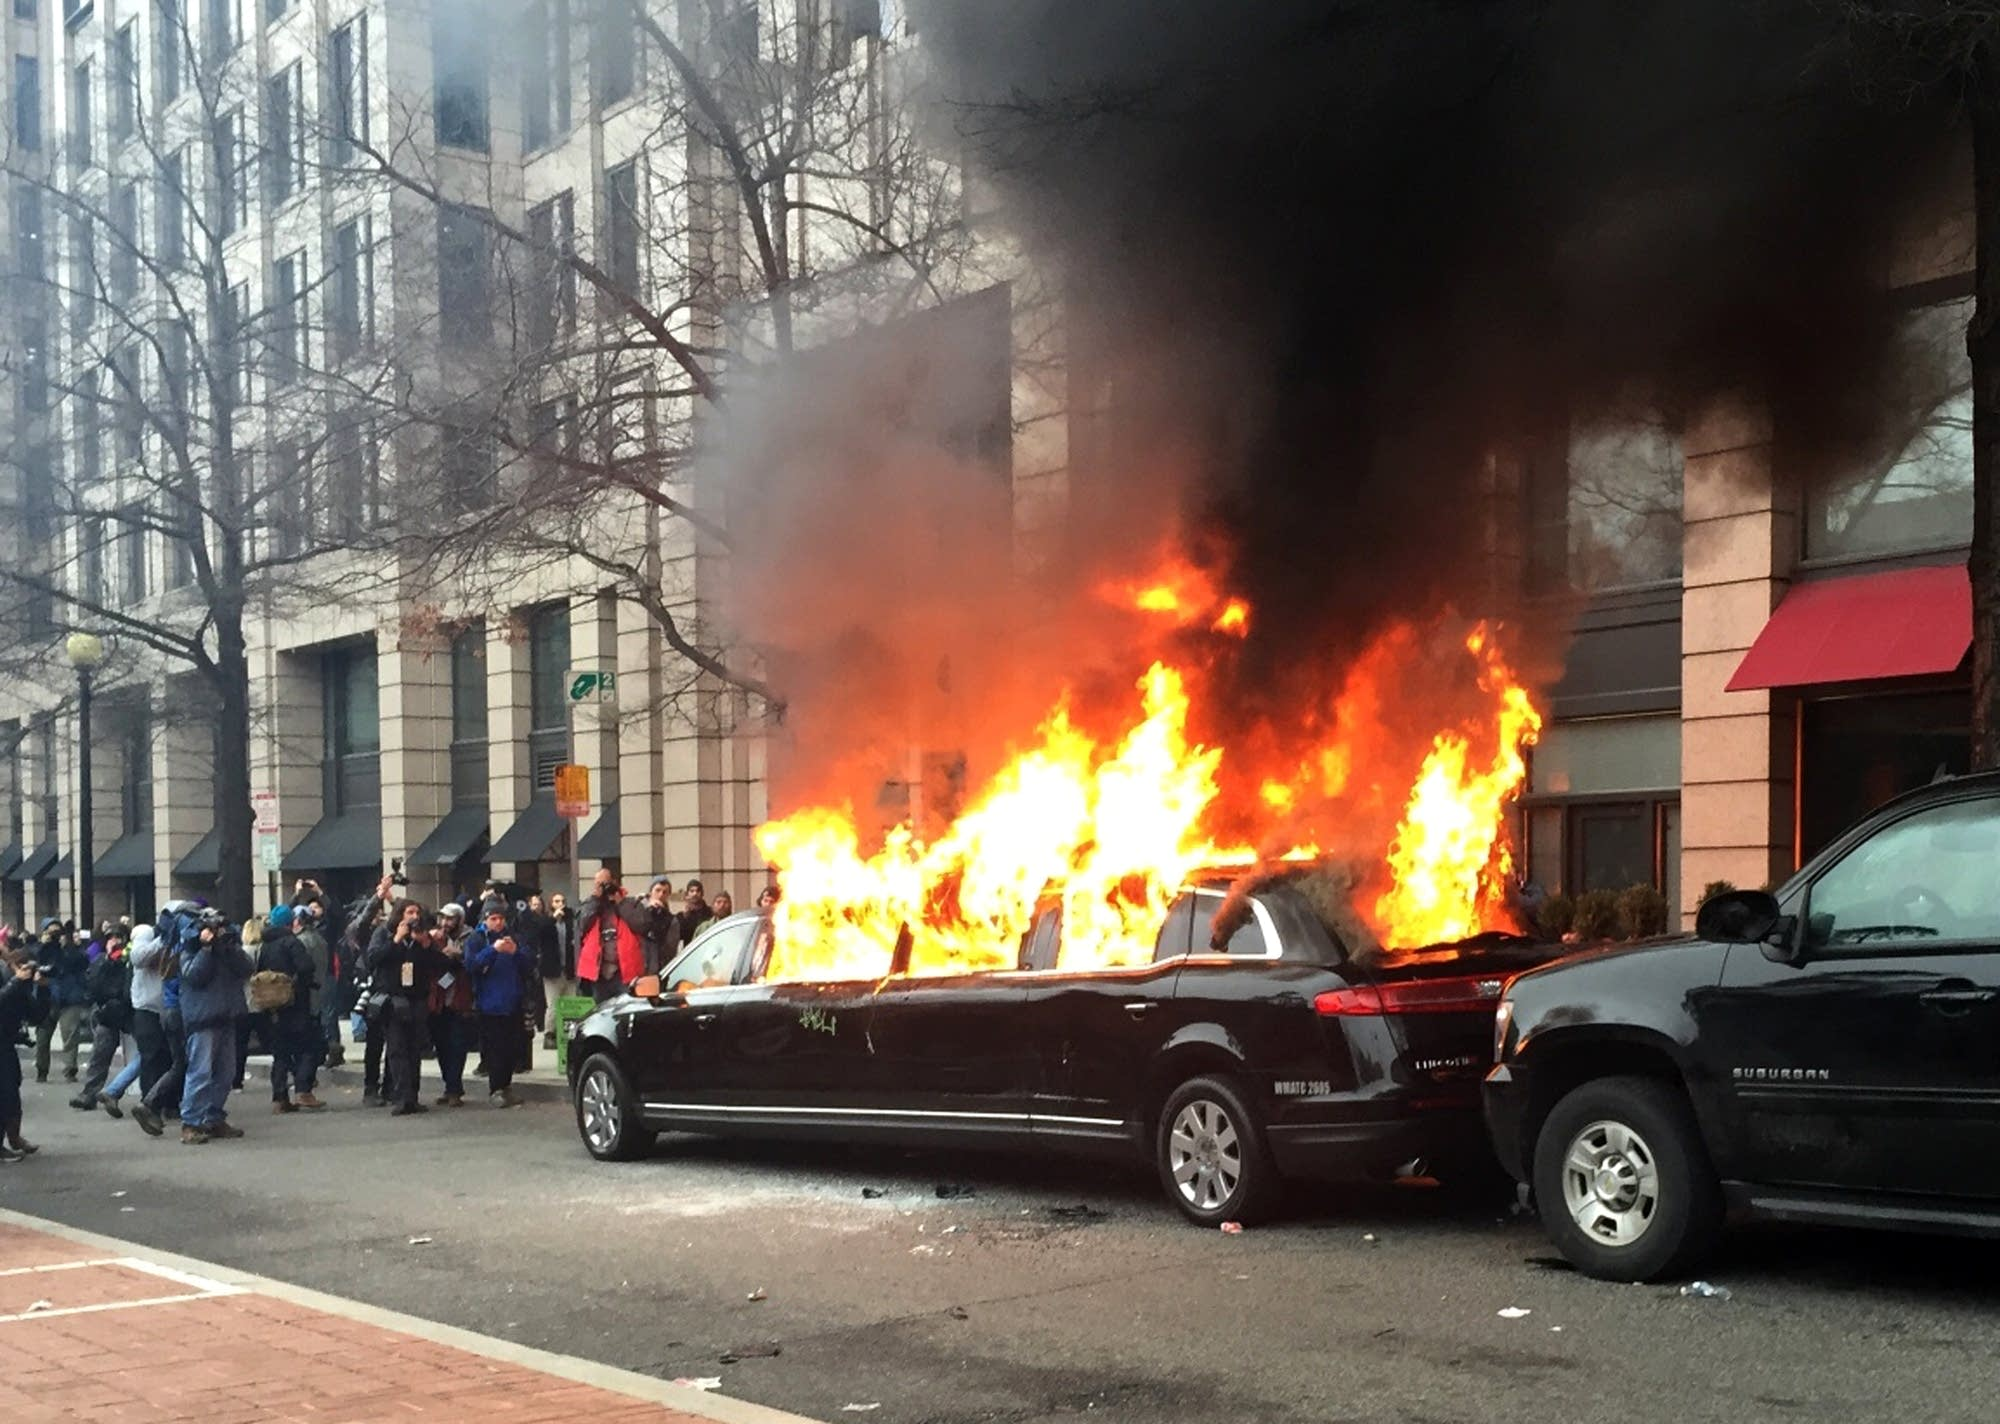 Protesters set a parked limousine on fire in downtown Washington, DC.